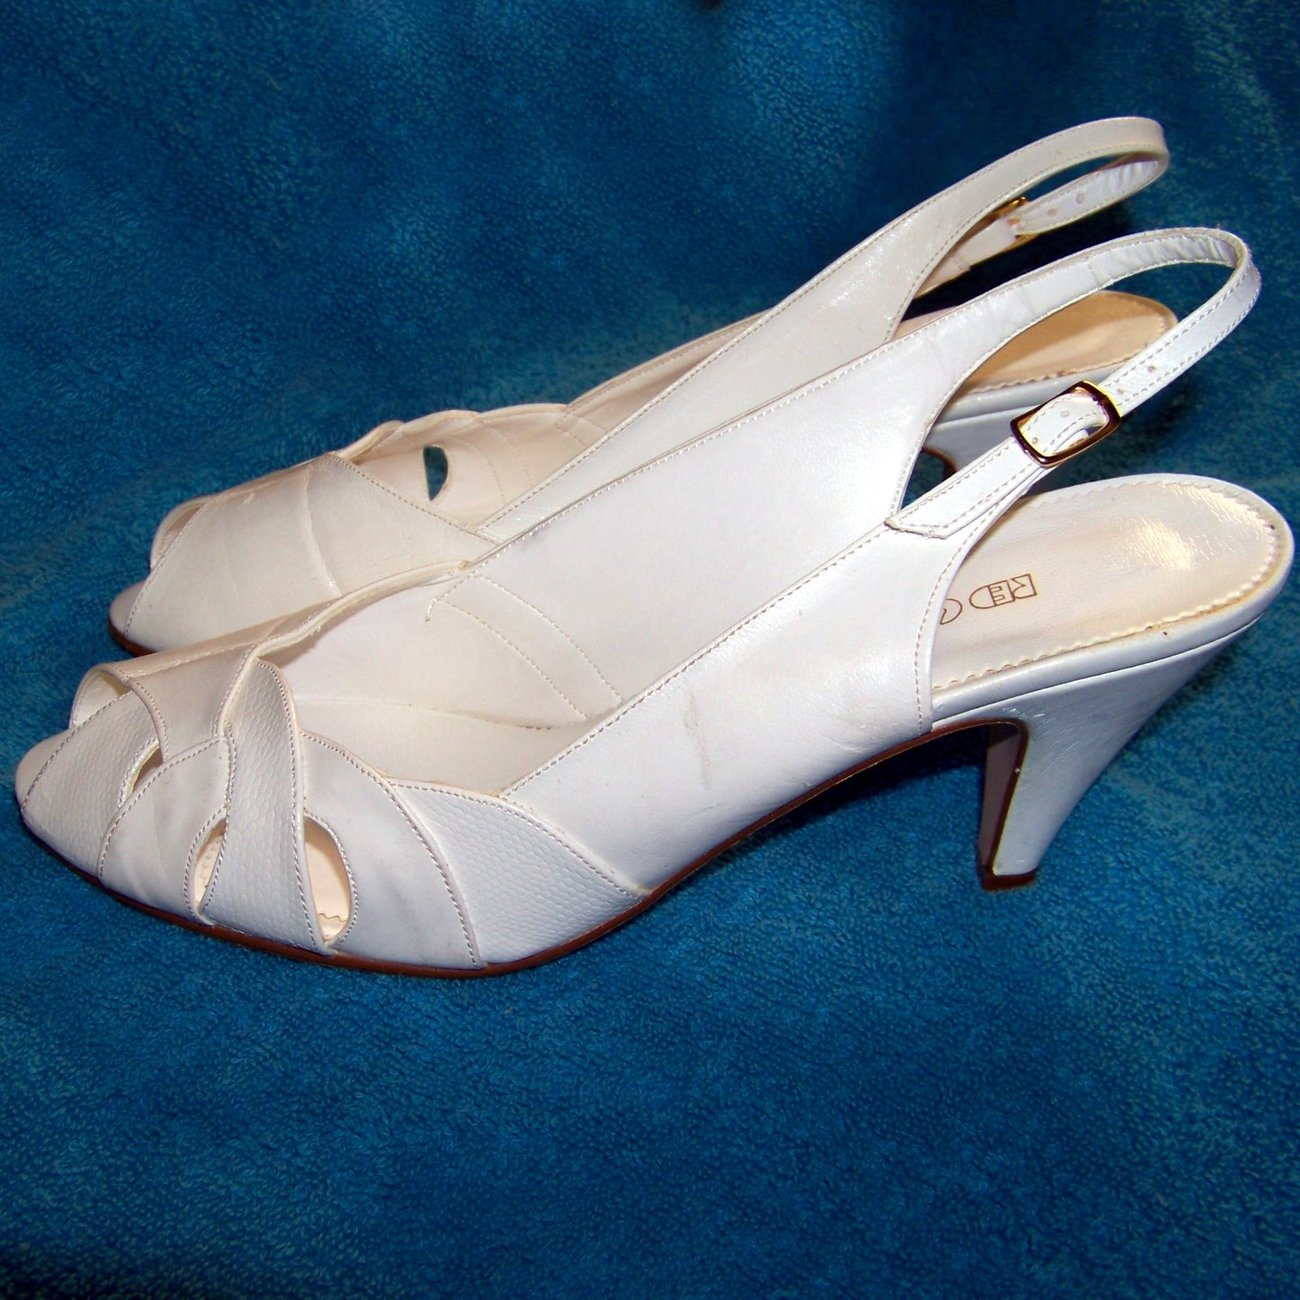 Red Cross shoes white leather 10 M vintage 70s